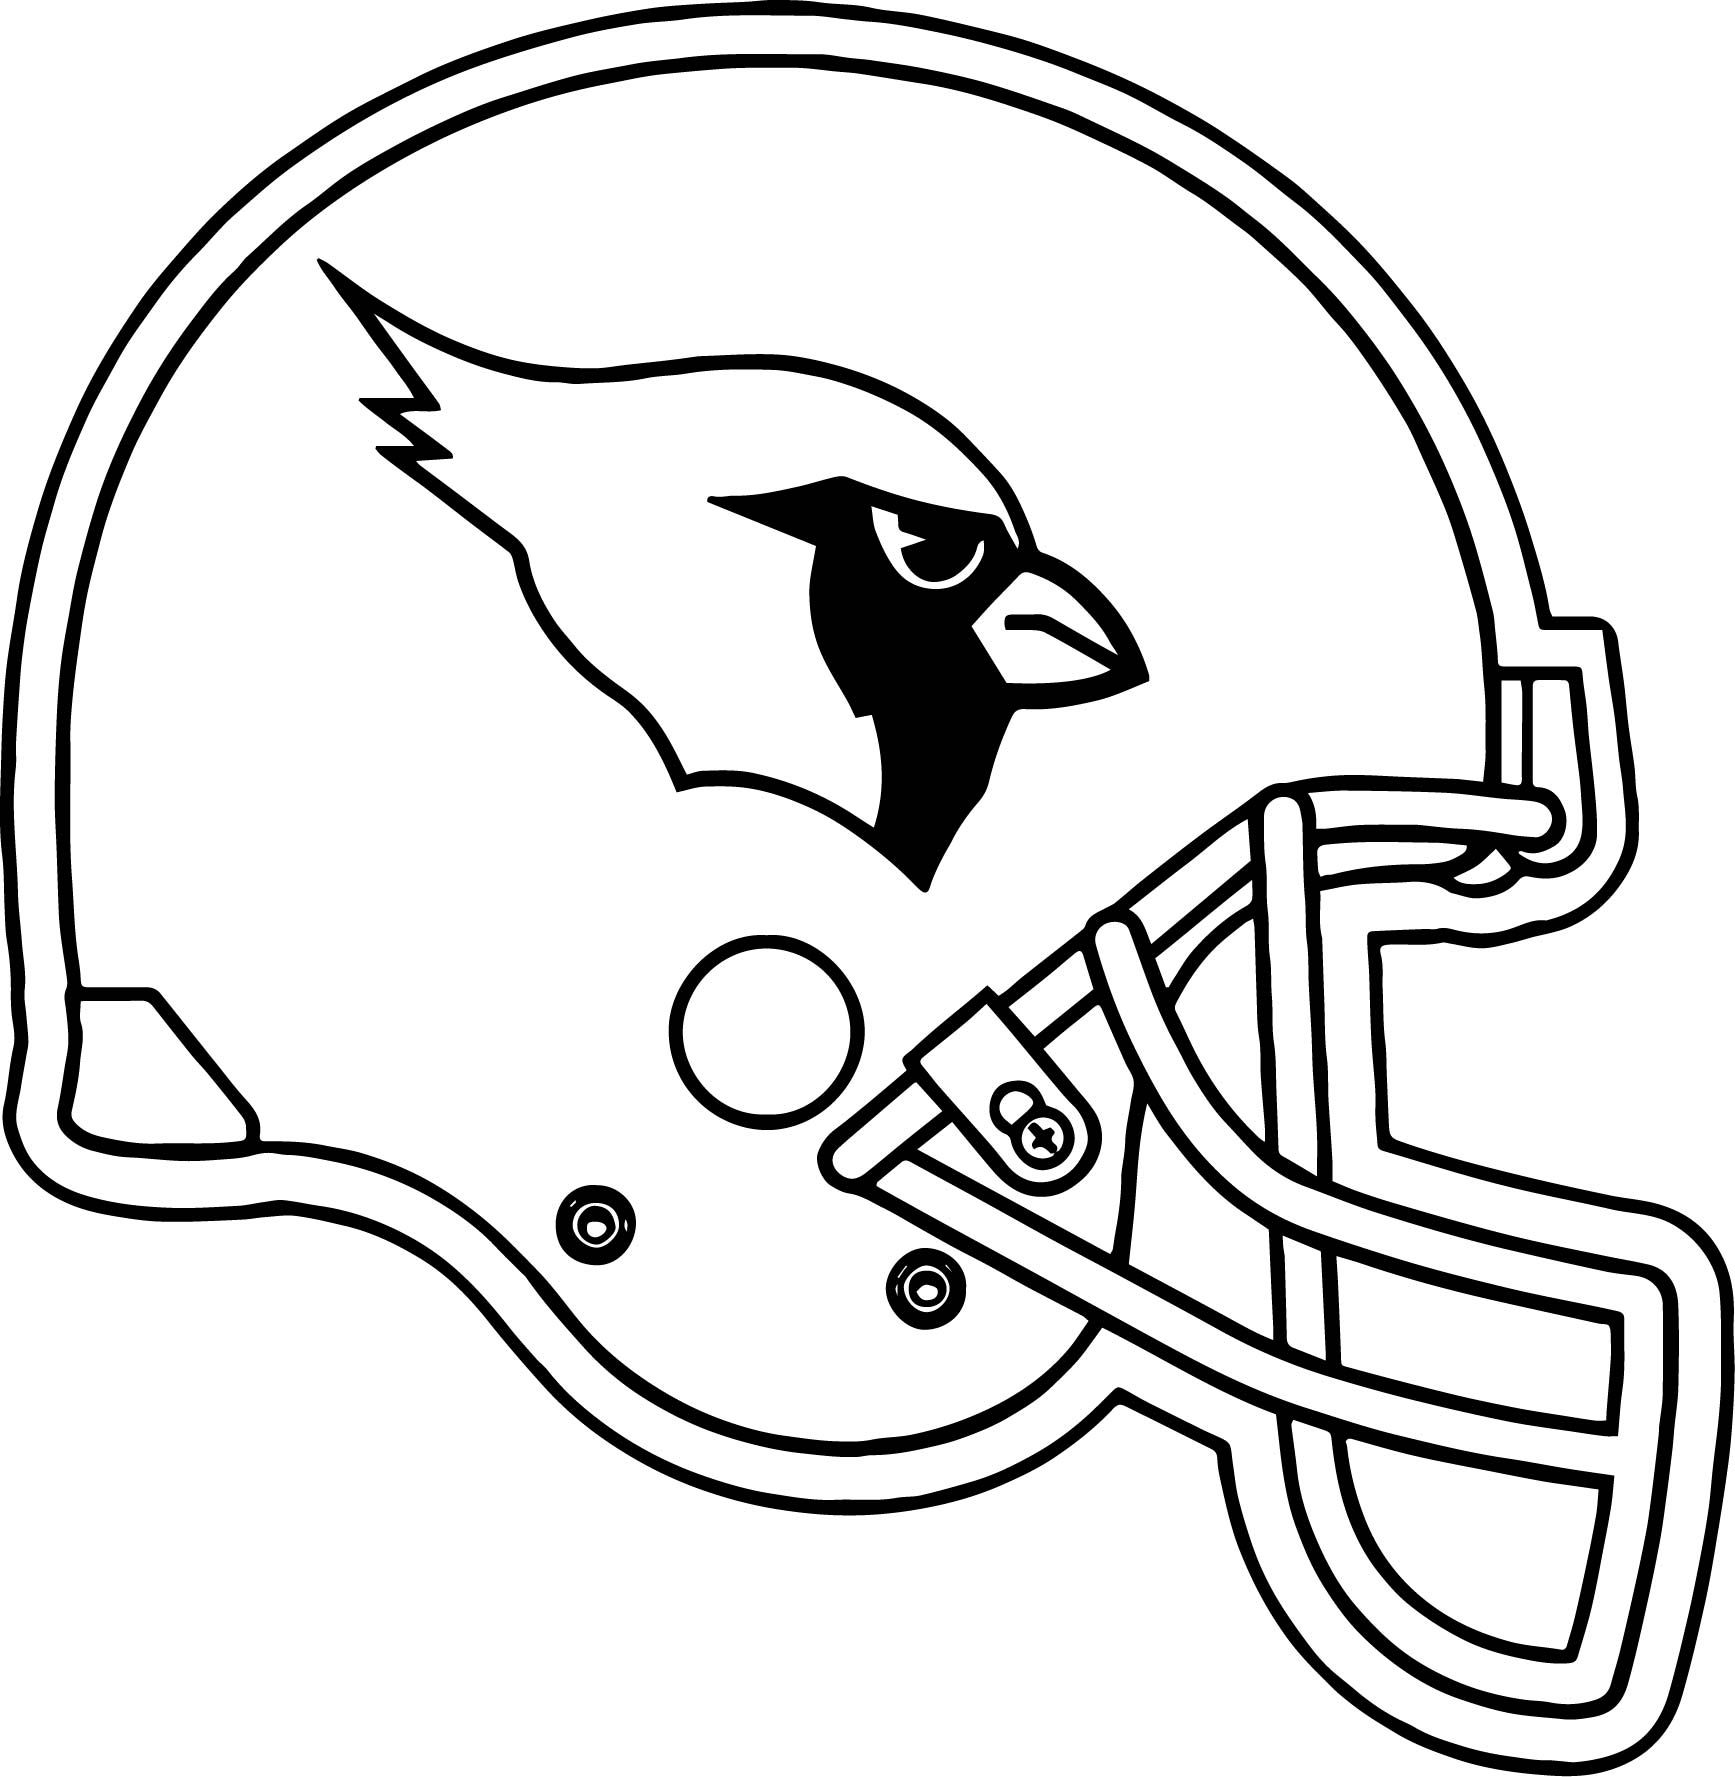 Football Helmet Coloring Pages Arizona Cardinals Football Helmets Sports Coloring Pages Cincinnati Bengals Football